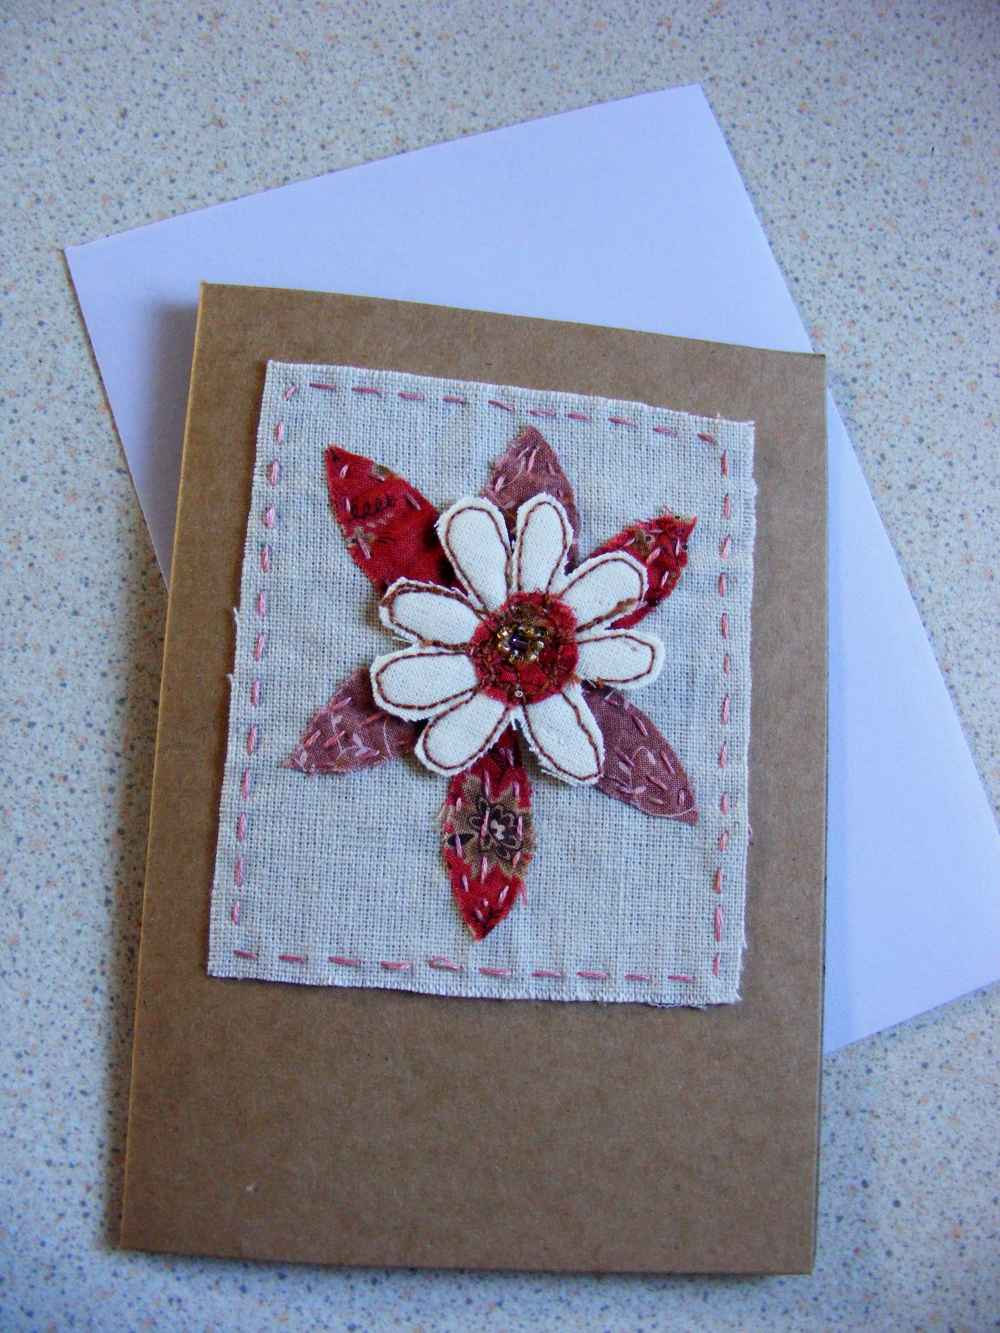 Flur 1 - handmade embroidered, beaded and appliqued greeting on acid free card.